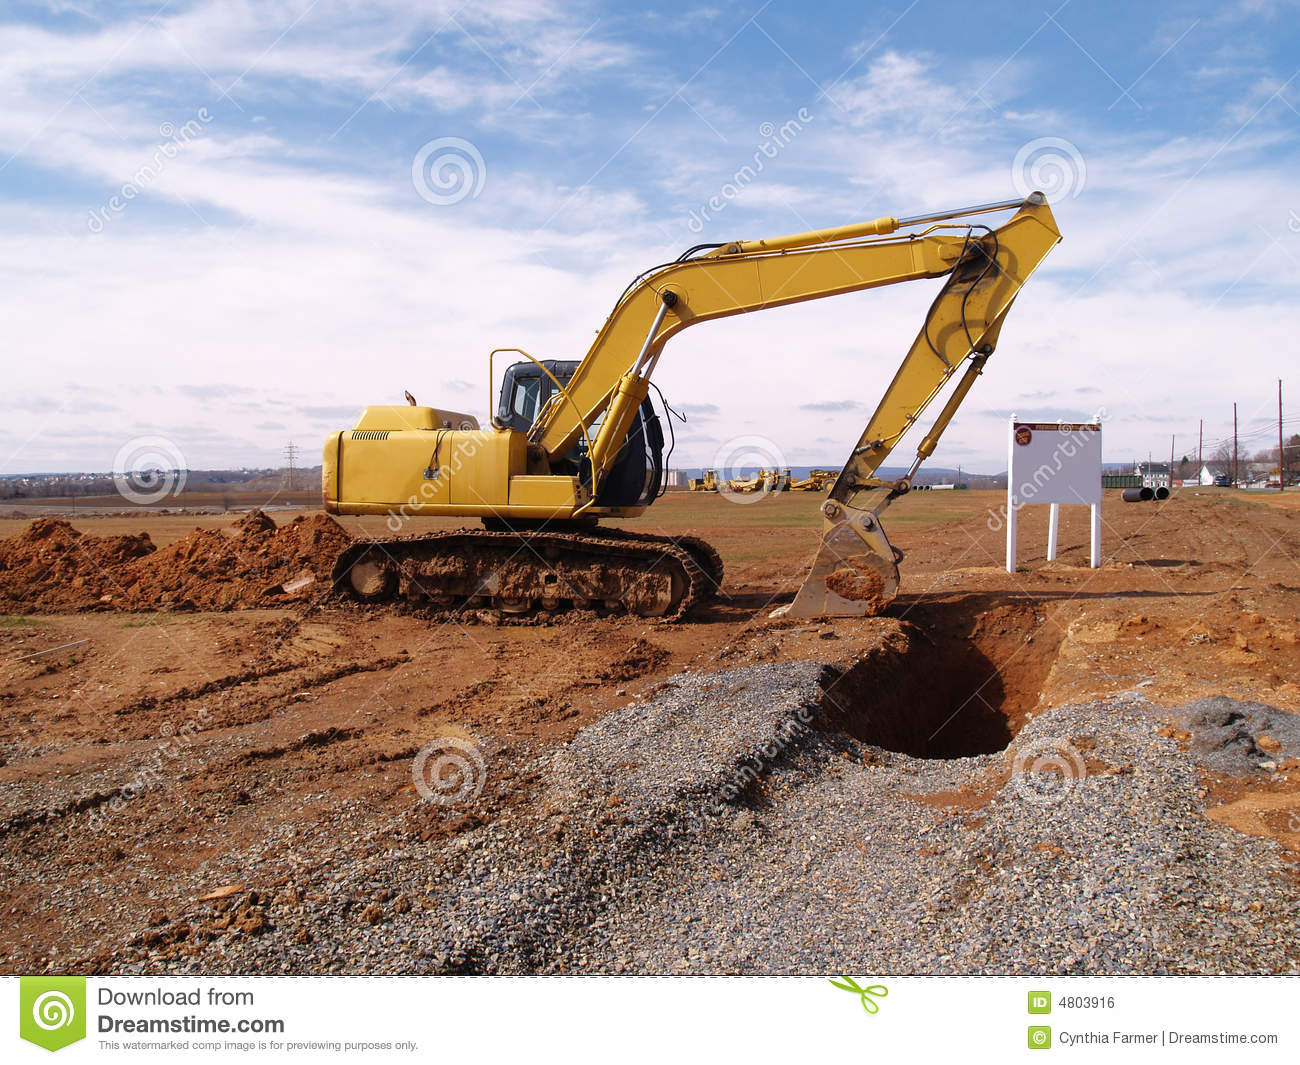 heavy duty construction equipment by work site royalty free stock image image 4803916 marching band drum major clipart drum major clipart